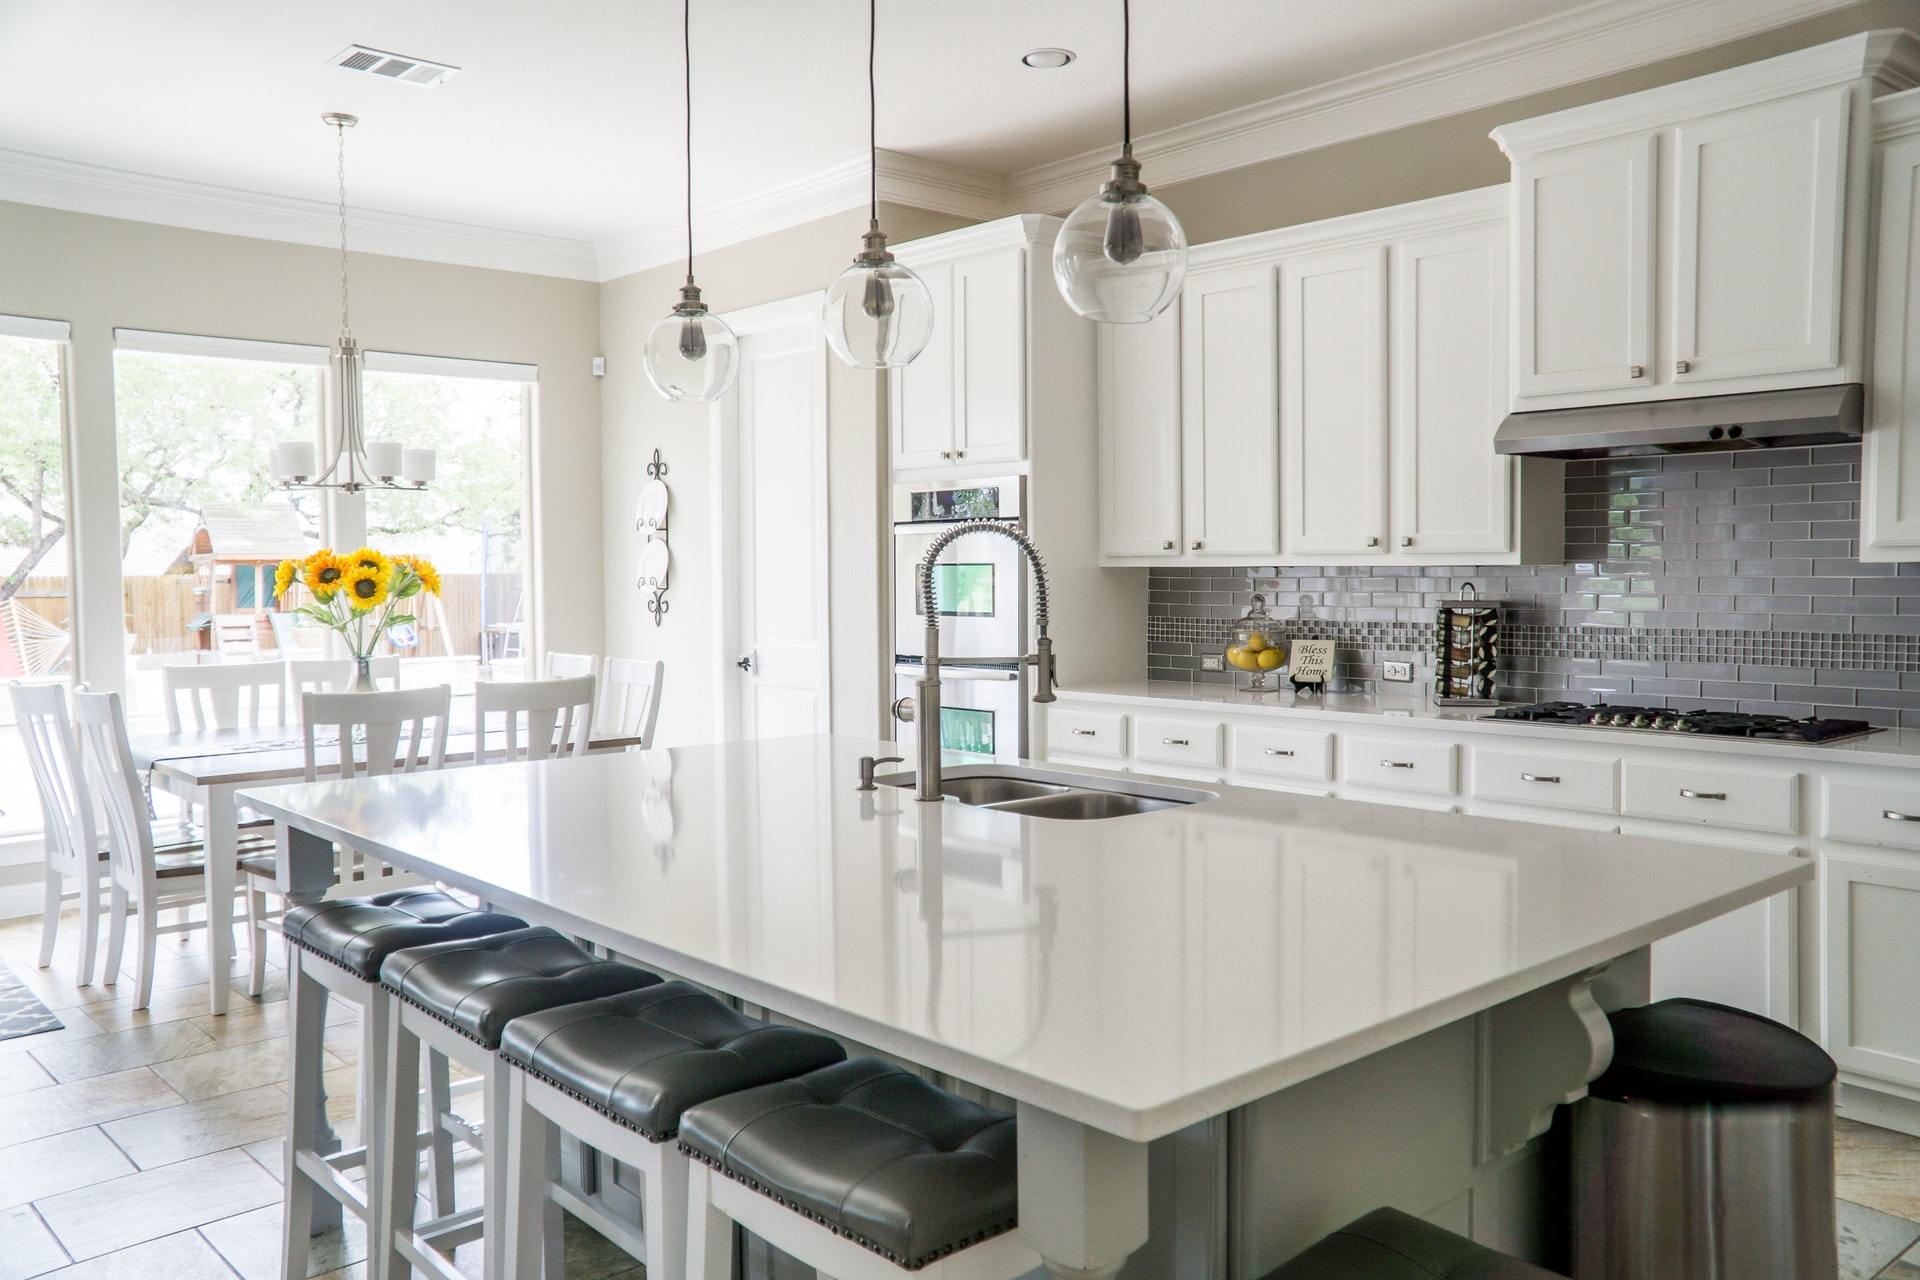 cabinet-contemporary-counter-kitchen-upgrade-home-value